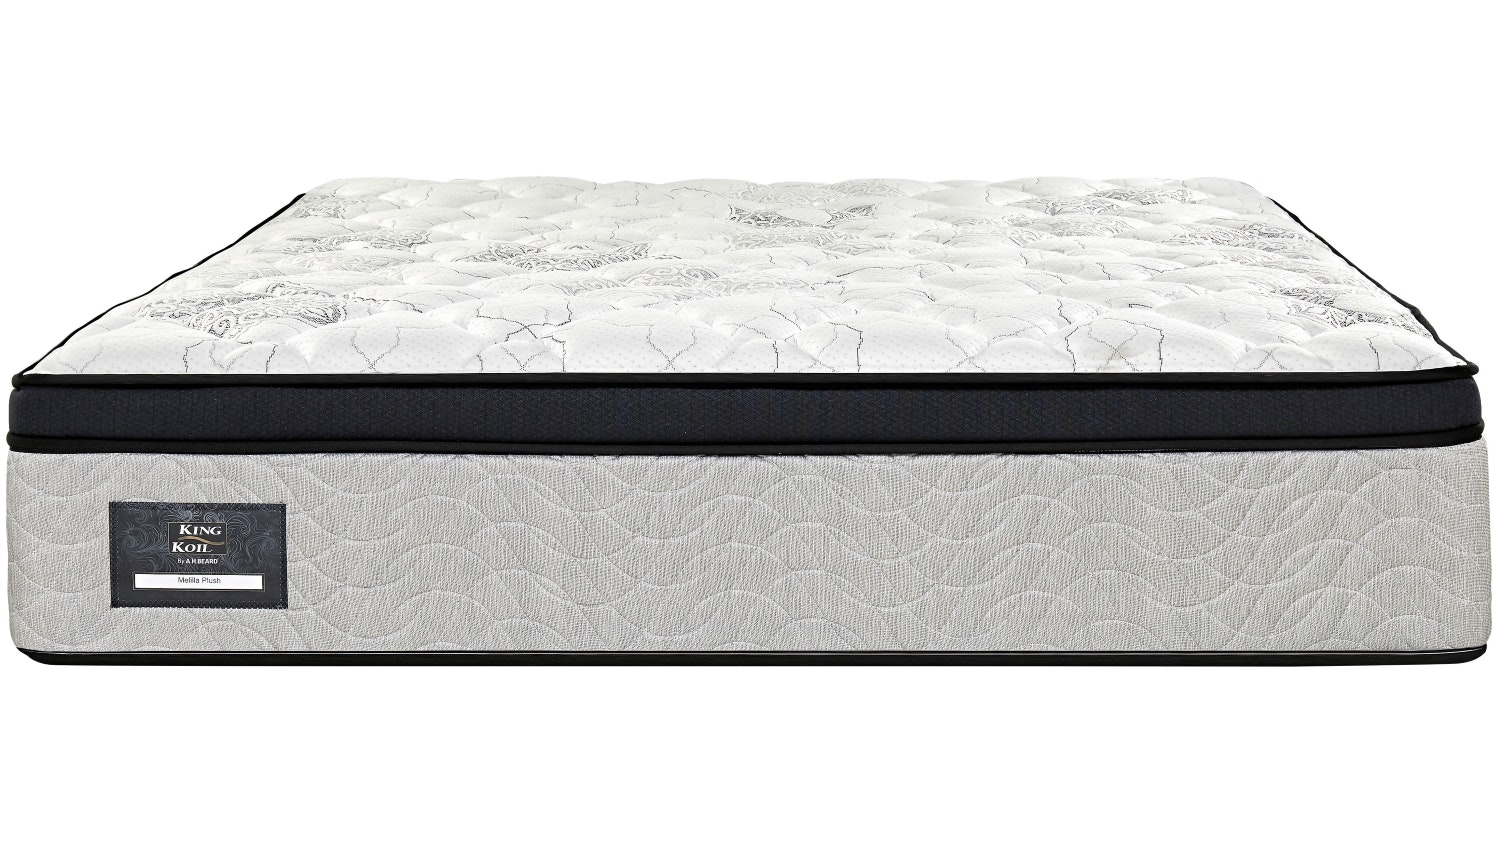 King Koil Melilla Plush Mattress